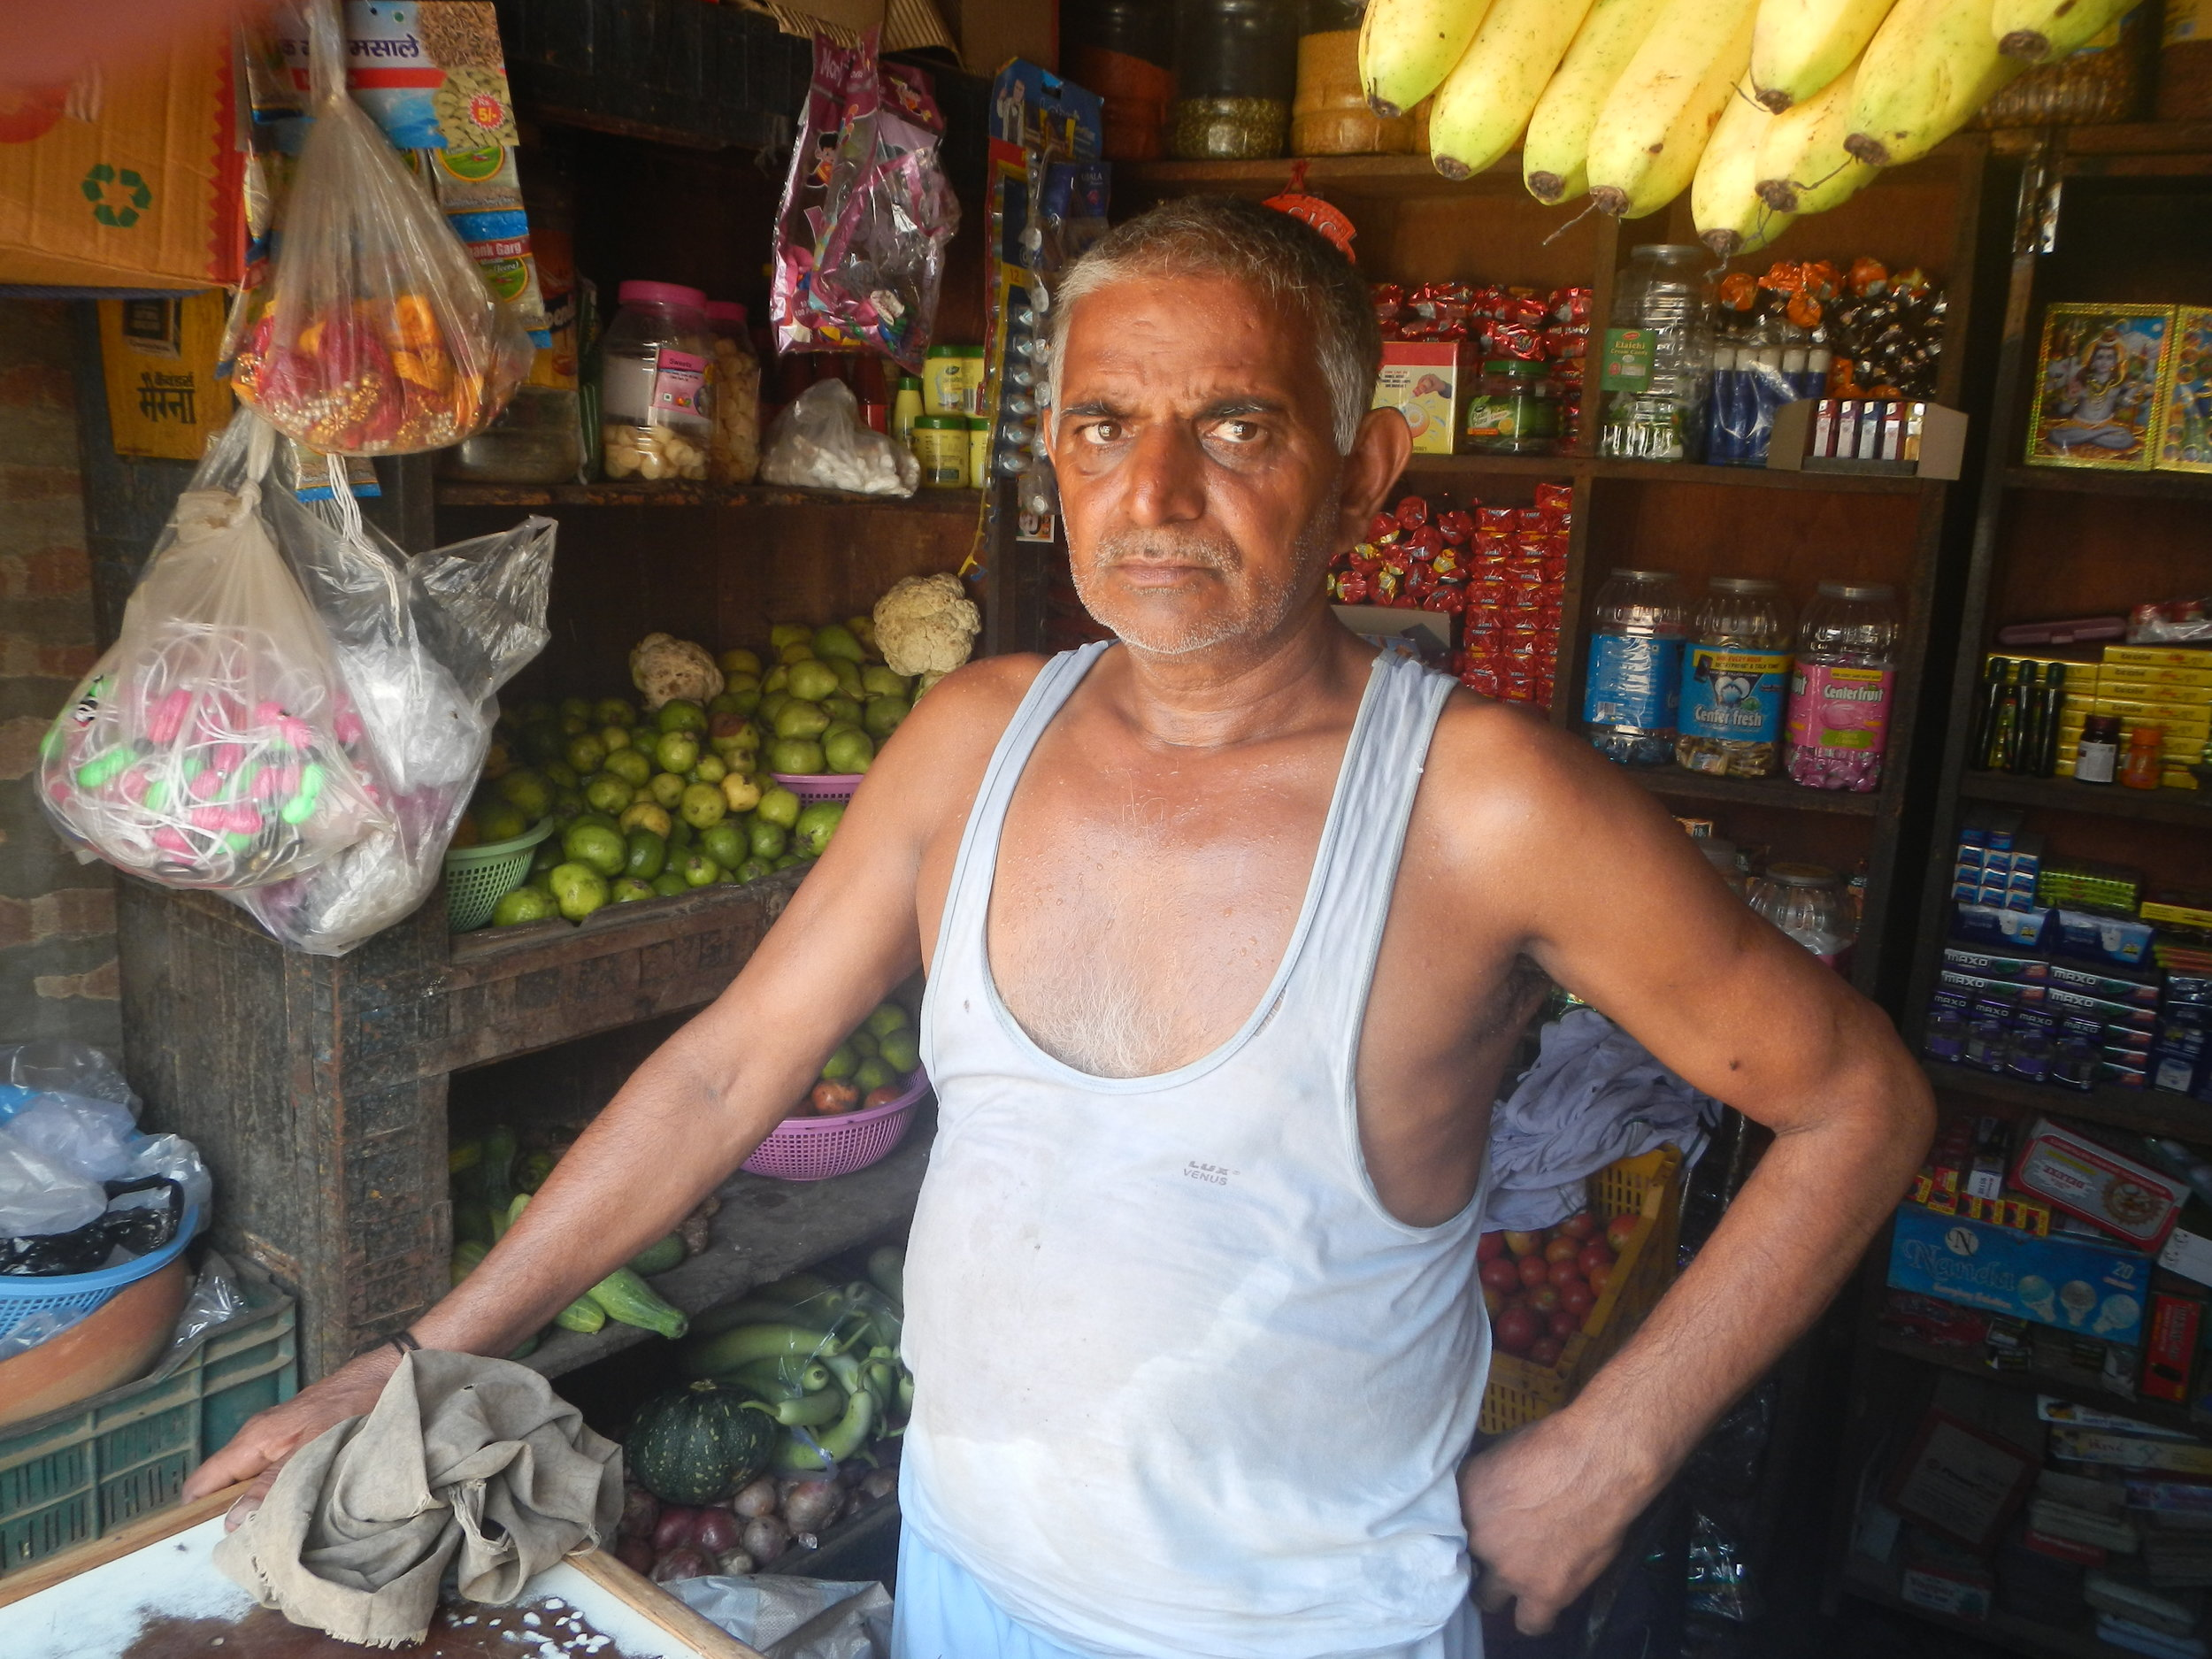 Subeh Deen, a Muslim shopkeeper, at his store in Barsola village in Haryana, India. Photo by Priyadarshini Sen.